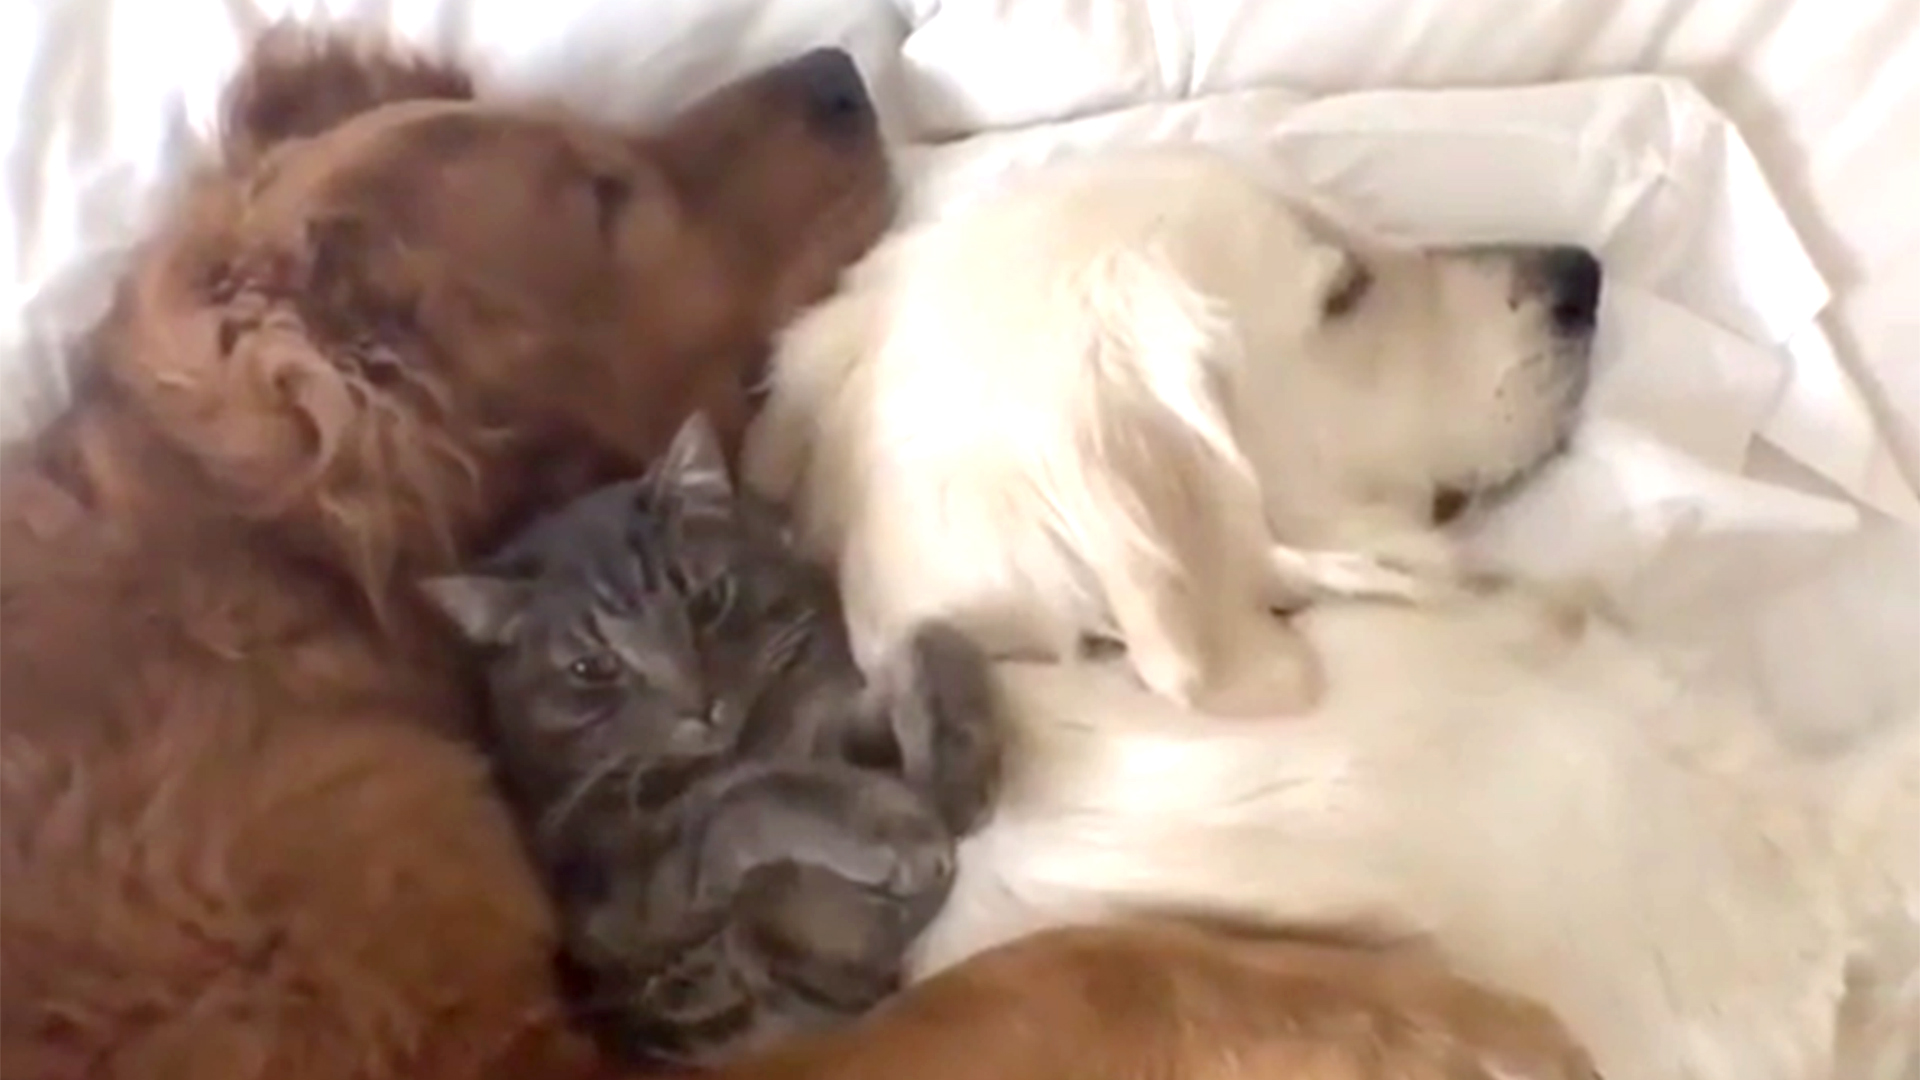 Watch This Adorable Cuddle Session Between 2 Dogs And A Cat